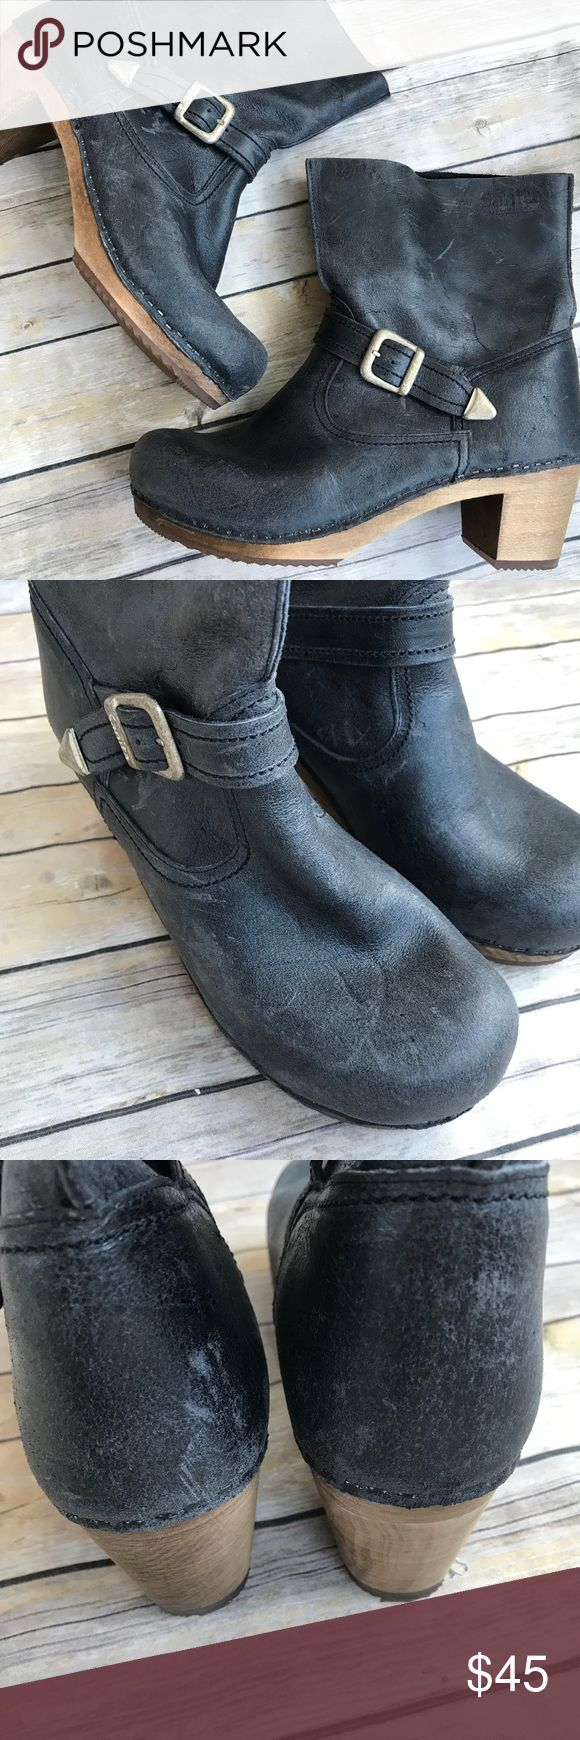 """Sanita Boots Gorgeous broken in deep gray leather boots by Sanita. Wooden soles. Incredibly well made. Wear as shown. Tons of life left! Labeled as a size """"40"""" Sanita Shoes Ankle Boots & Booties"""